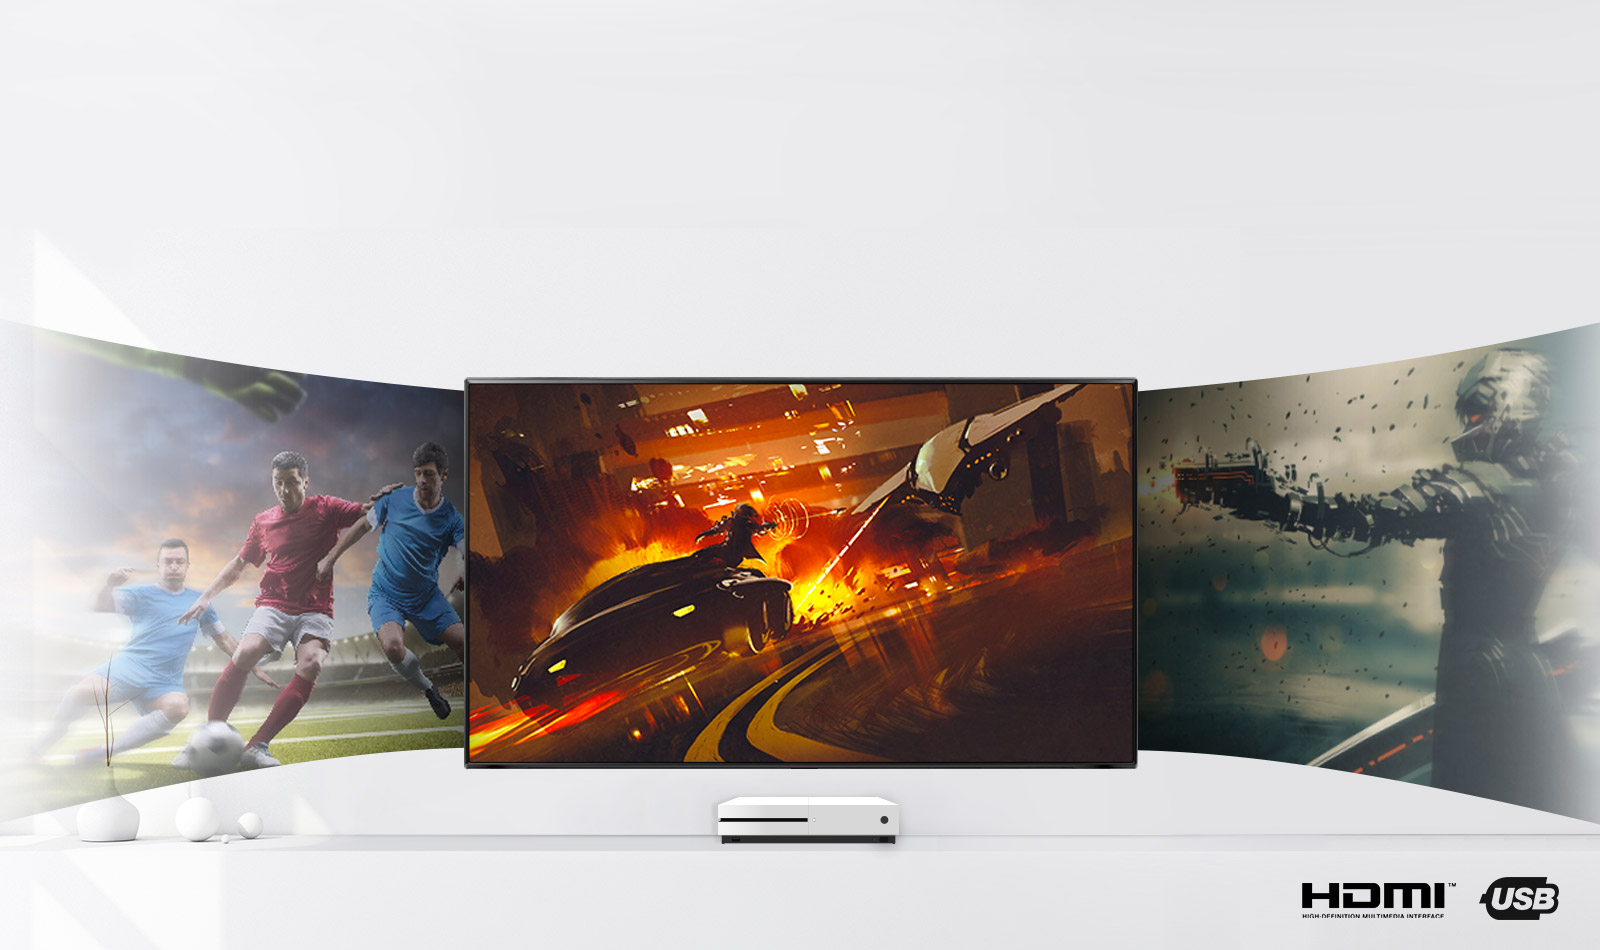 Immersive home entertainment - Plug and play. With multiple inputs you can plug in your HDMI cable or USB and play out your entertainment, games or digital devices through your TV.